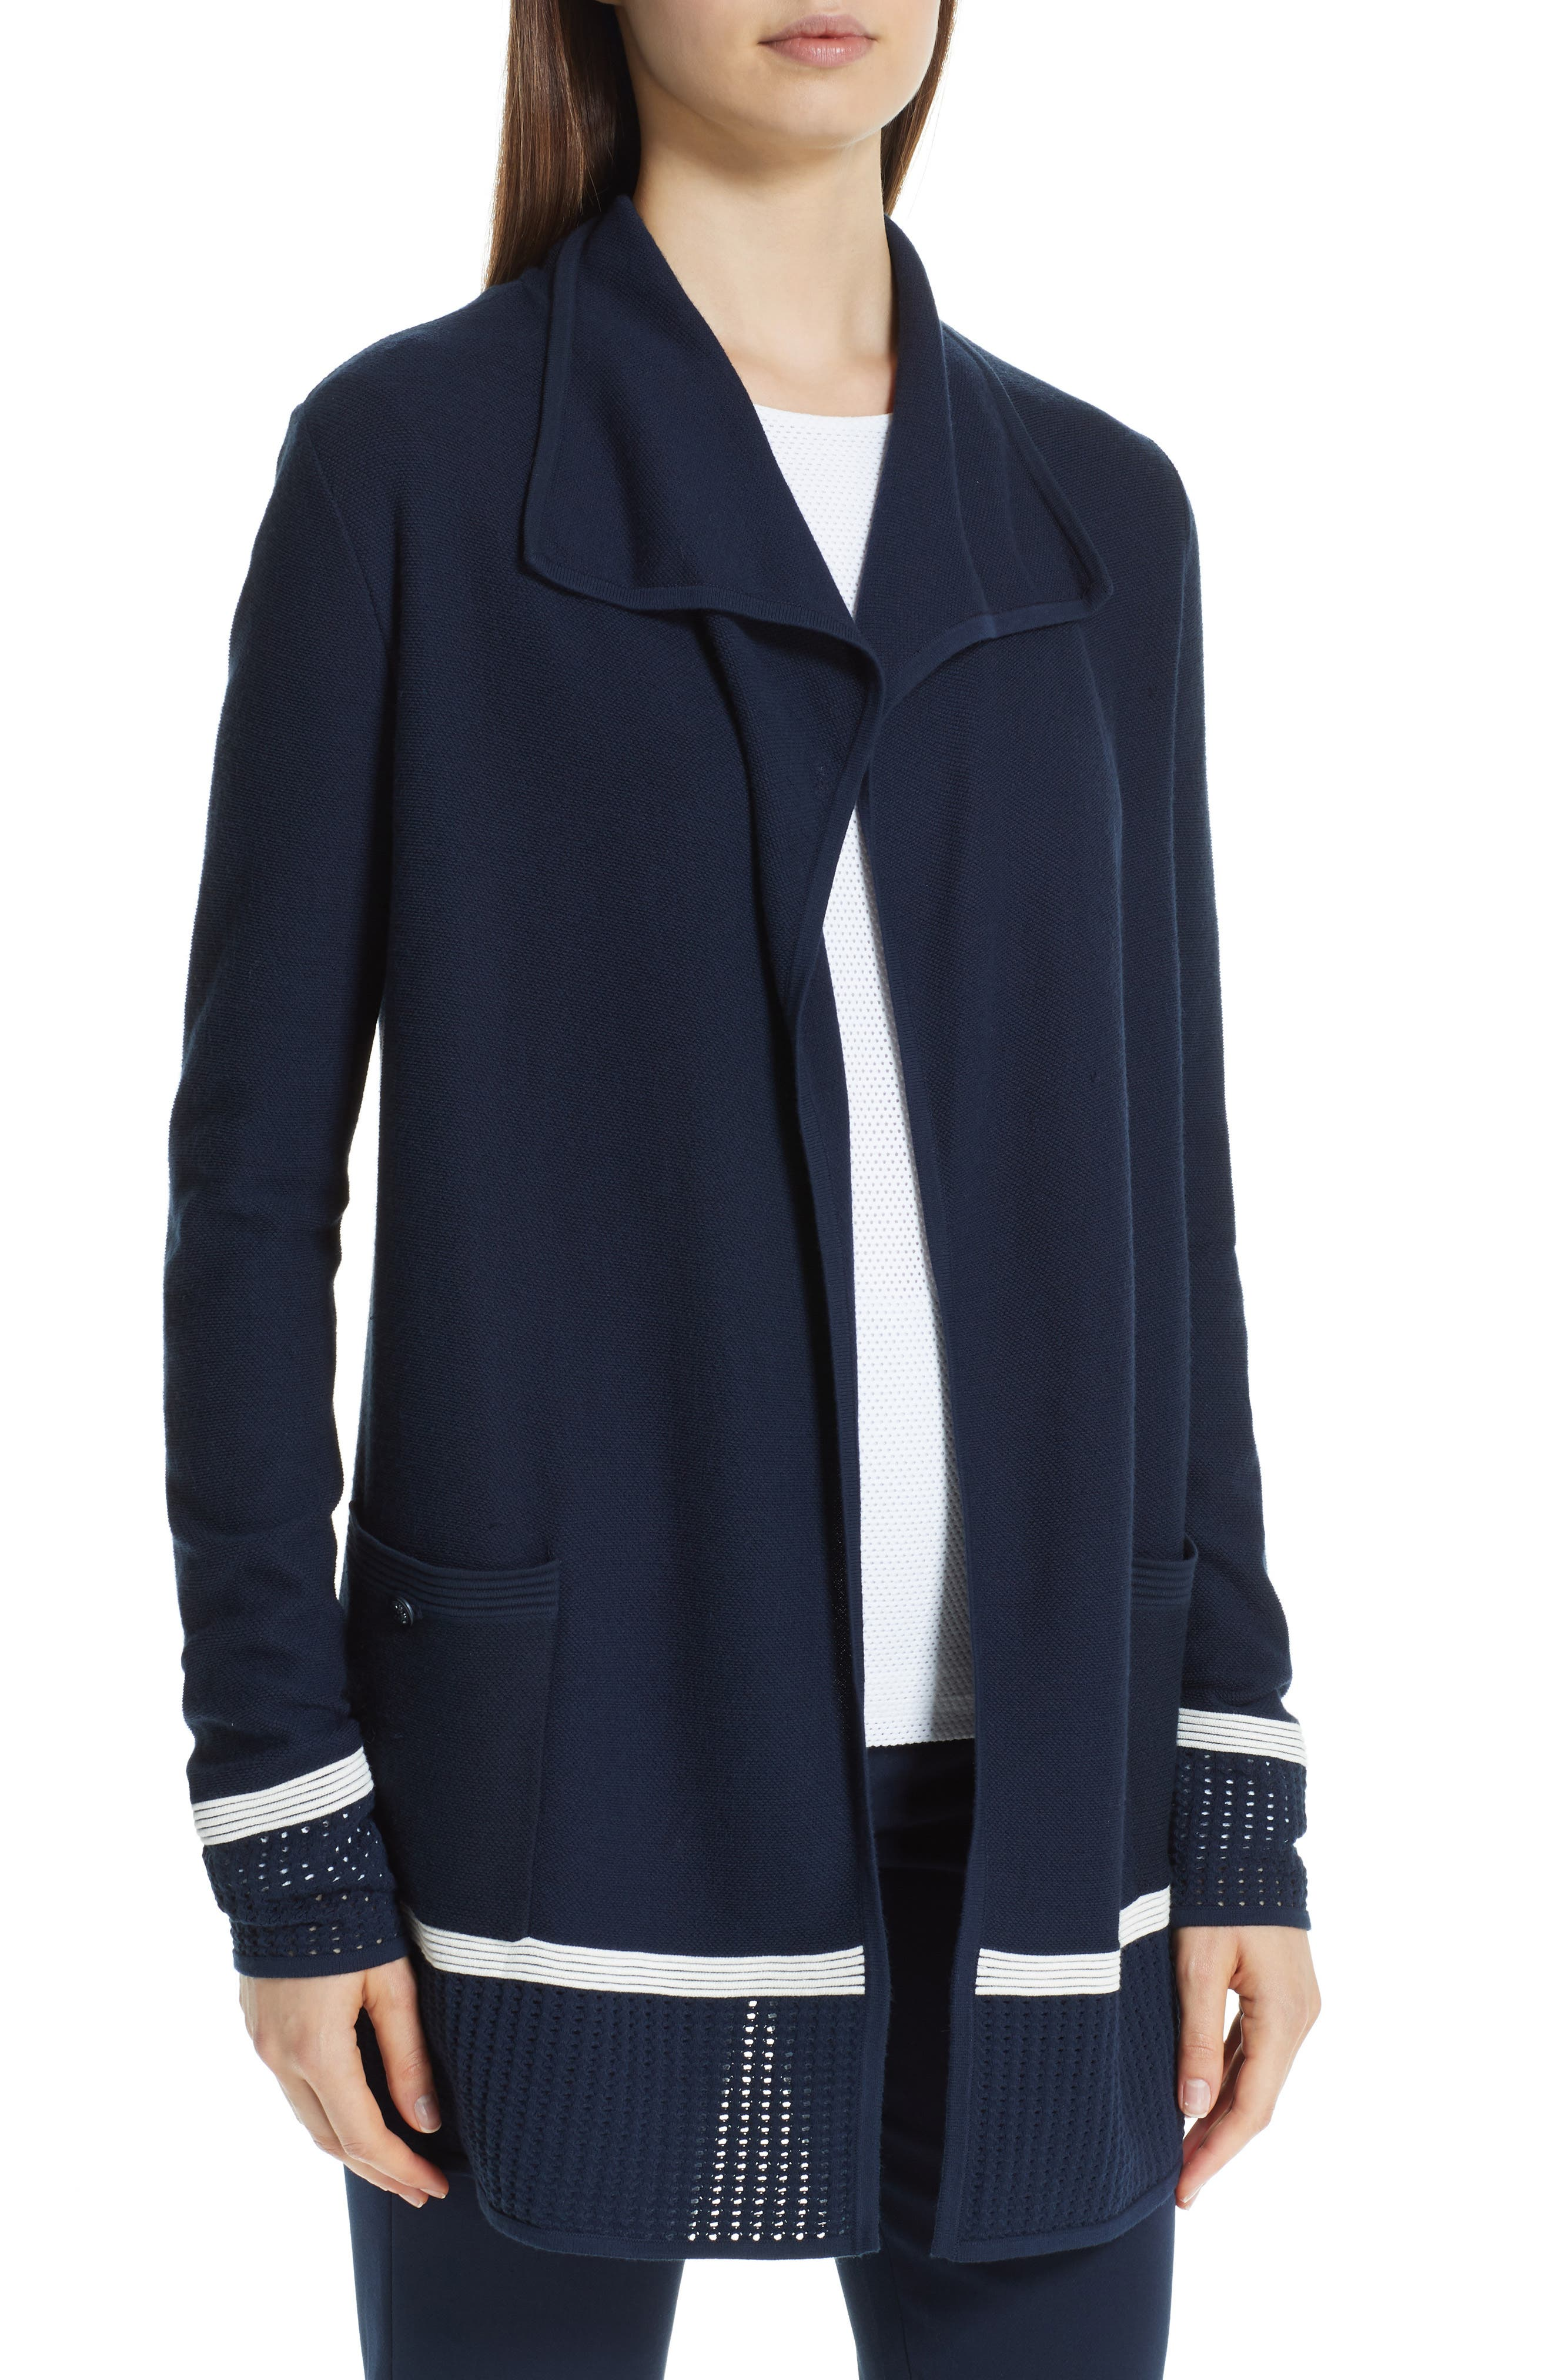 ST. JOHN COLLECTION,                             Mesh Trim Cardigan,                             Alternate thumbnail 4, color,                             NAVY/ CREAM